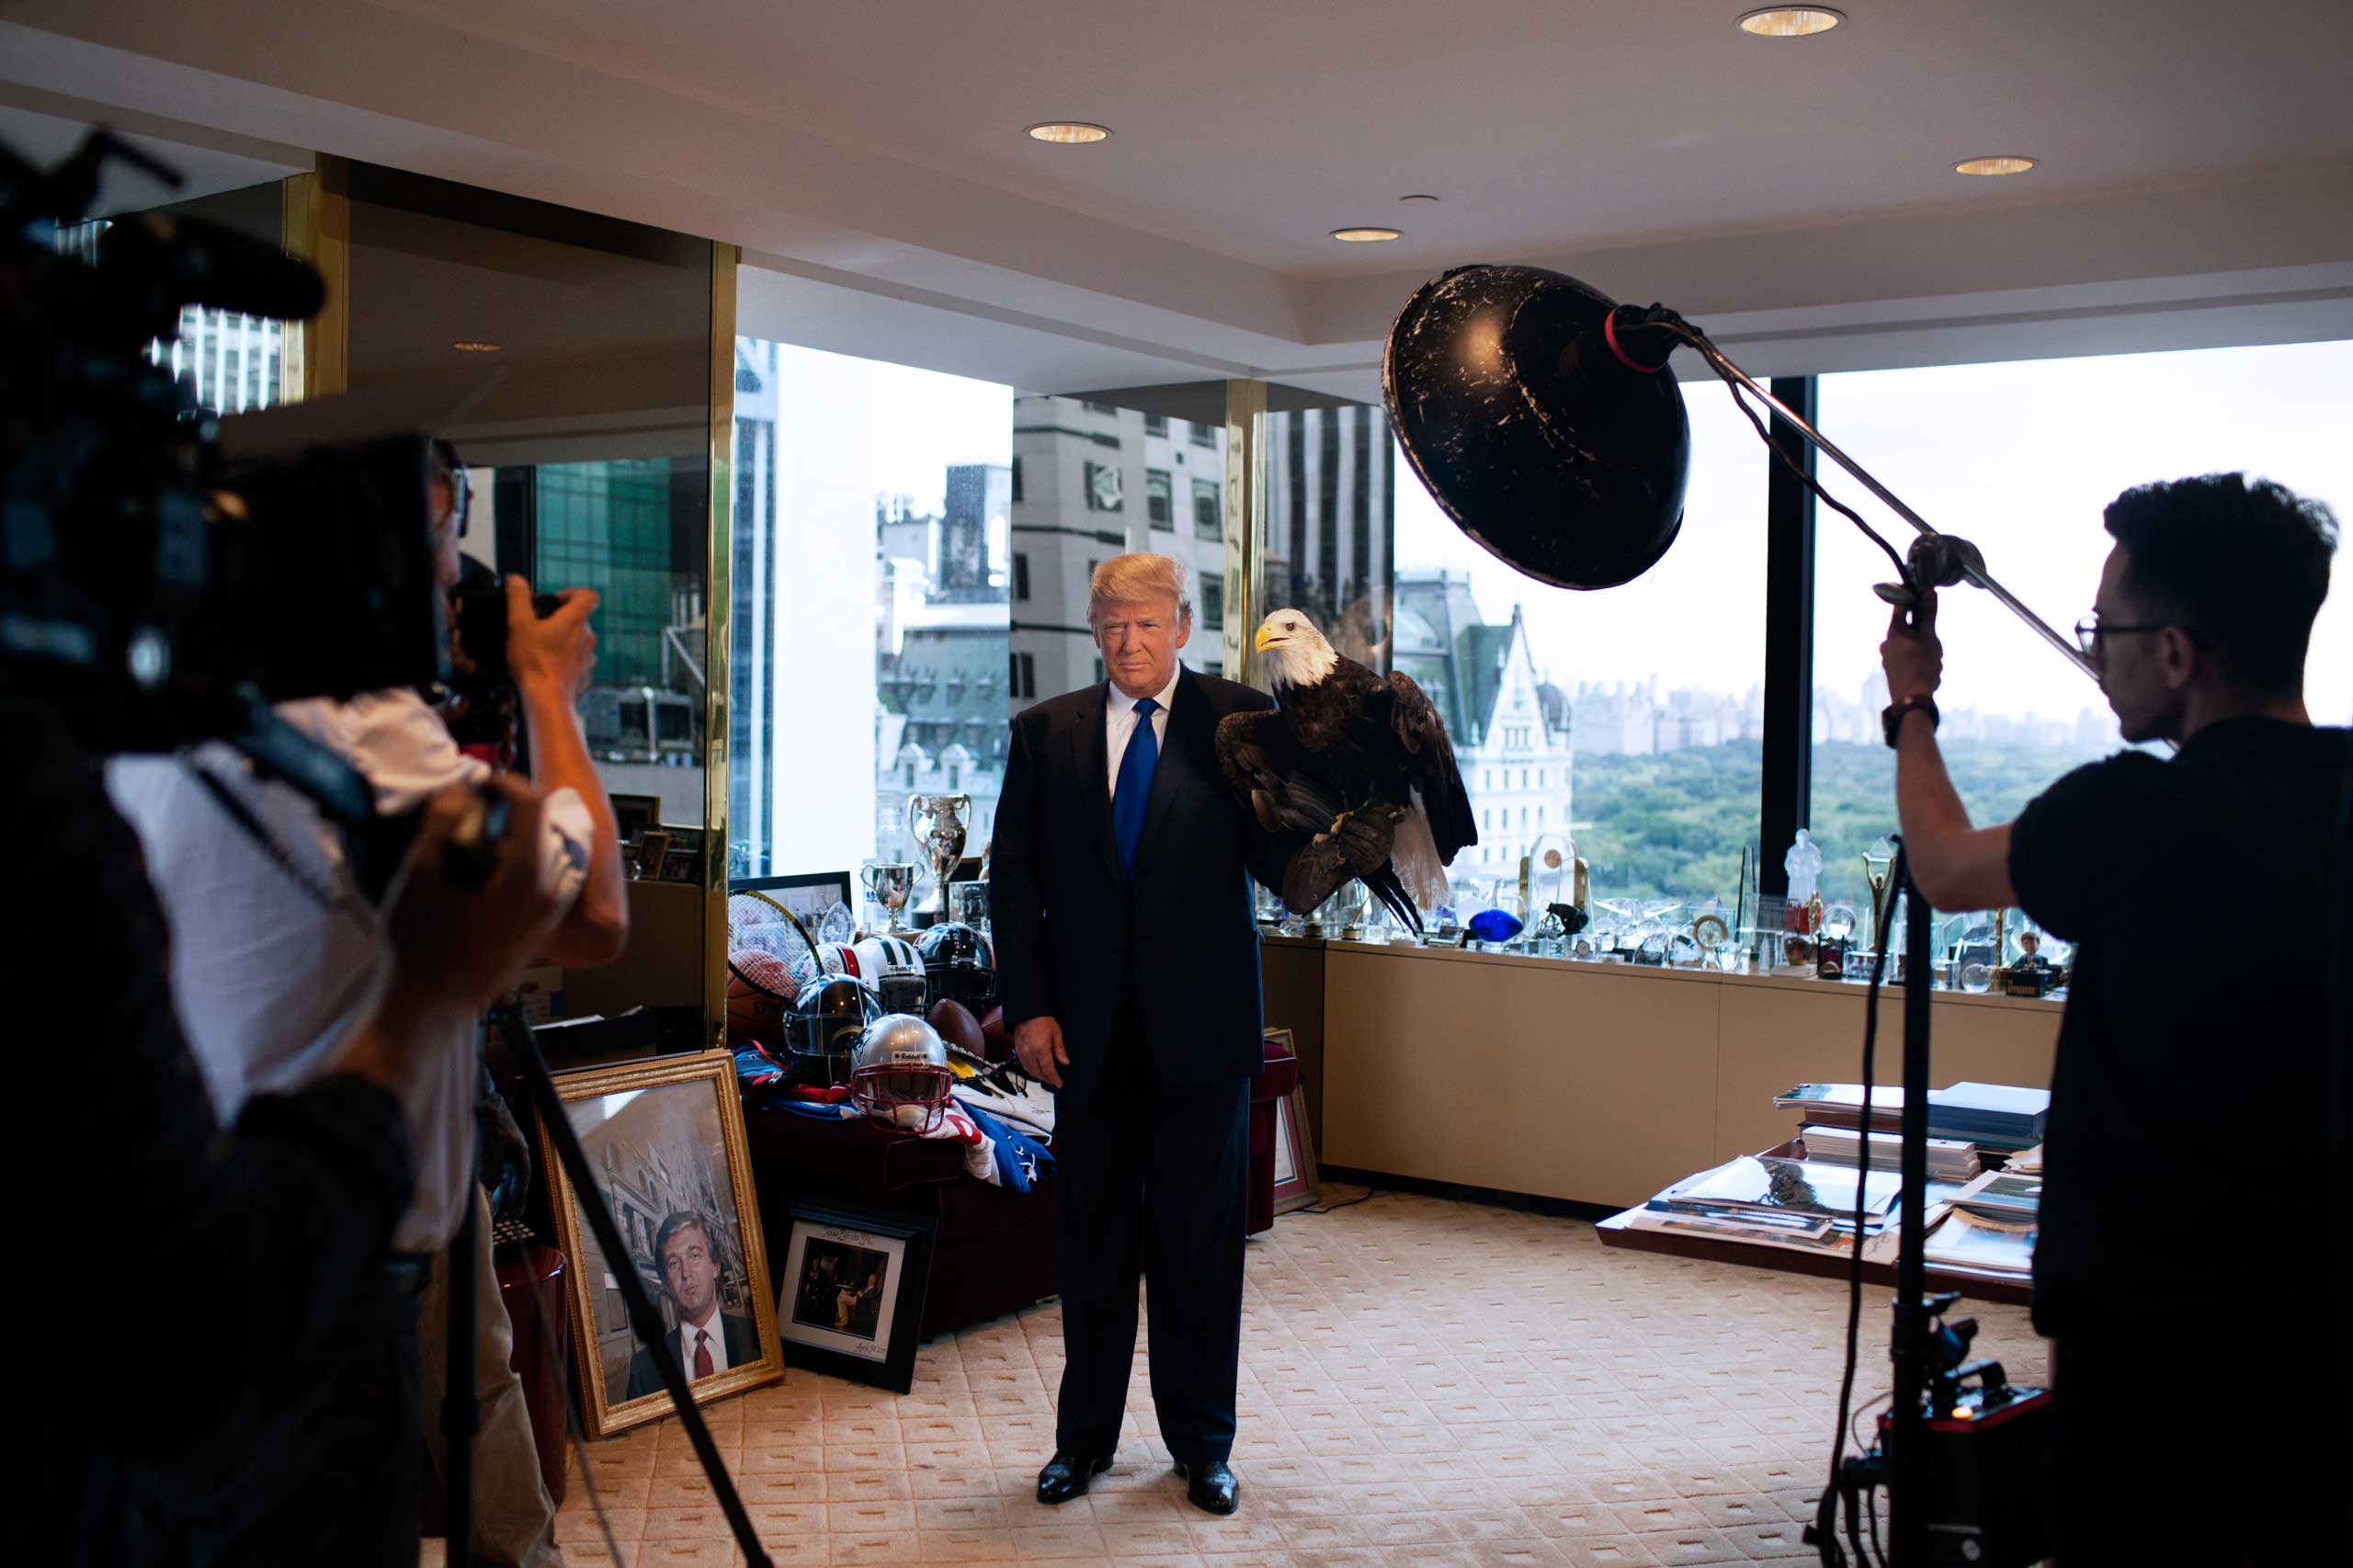 Photographer Martin Schoeller photographs Donald Trump in his corner office on the 25th floor of Trump Tower in New York City, with a bald eagle named Uncle Sam.